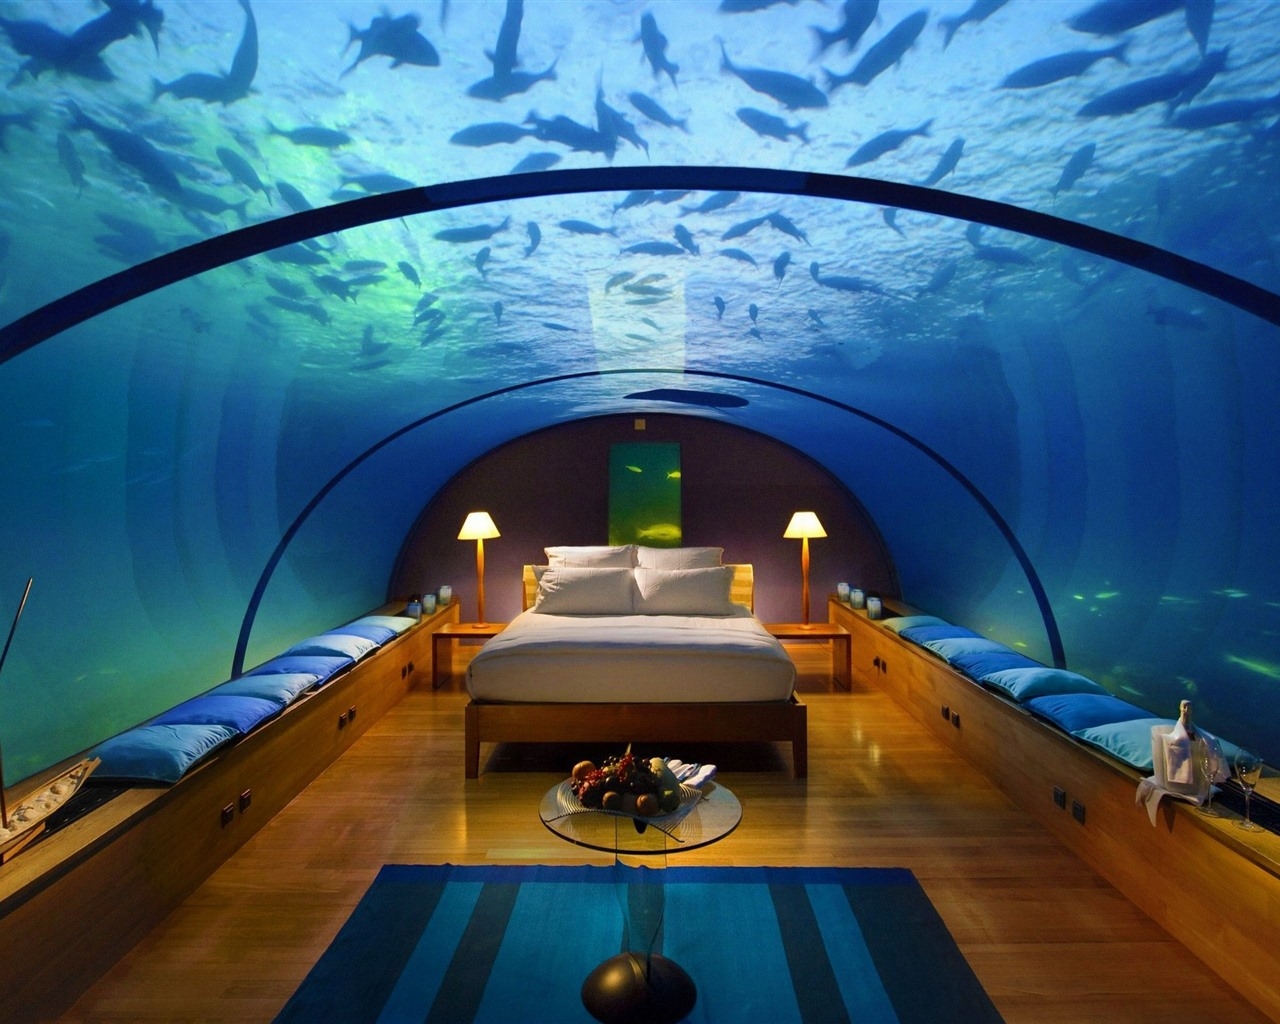 Wallpaper Bedroom Underwater Fish Glass 2560x1600 Hd Picture Image